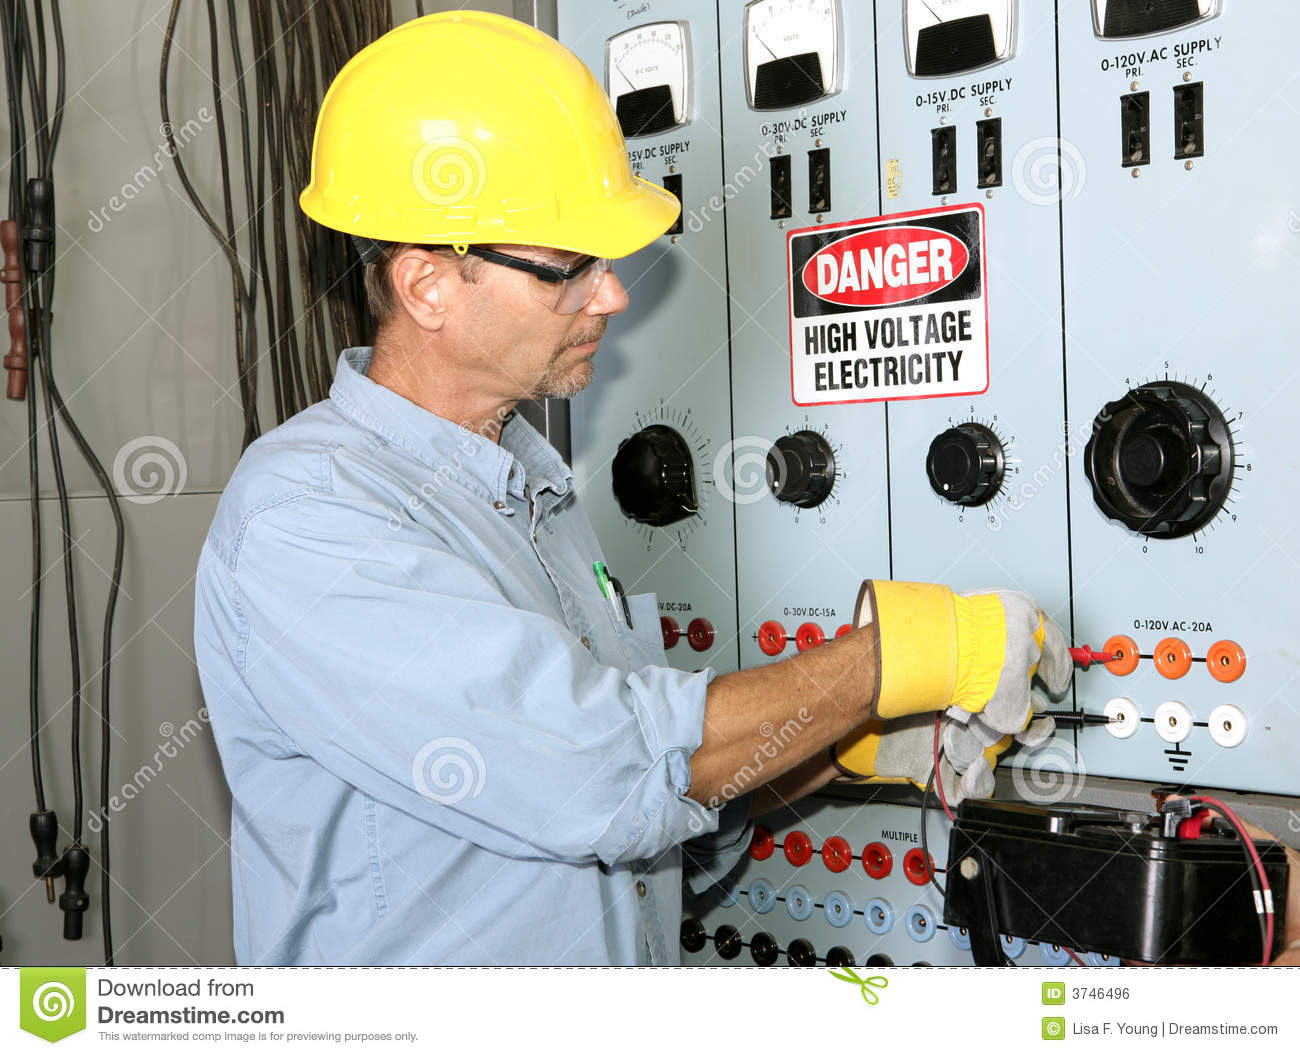 Electrician High Voltage Royalty Free Stock Image - Image: 3746496